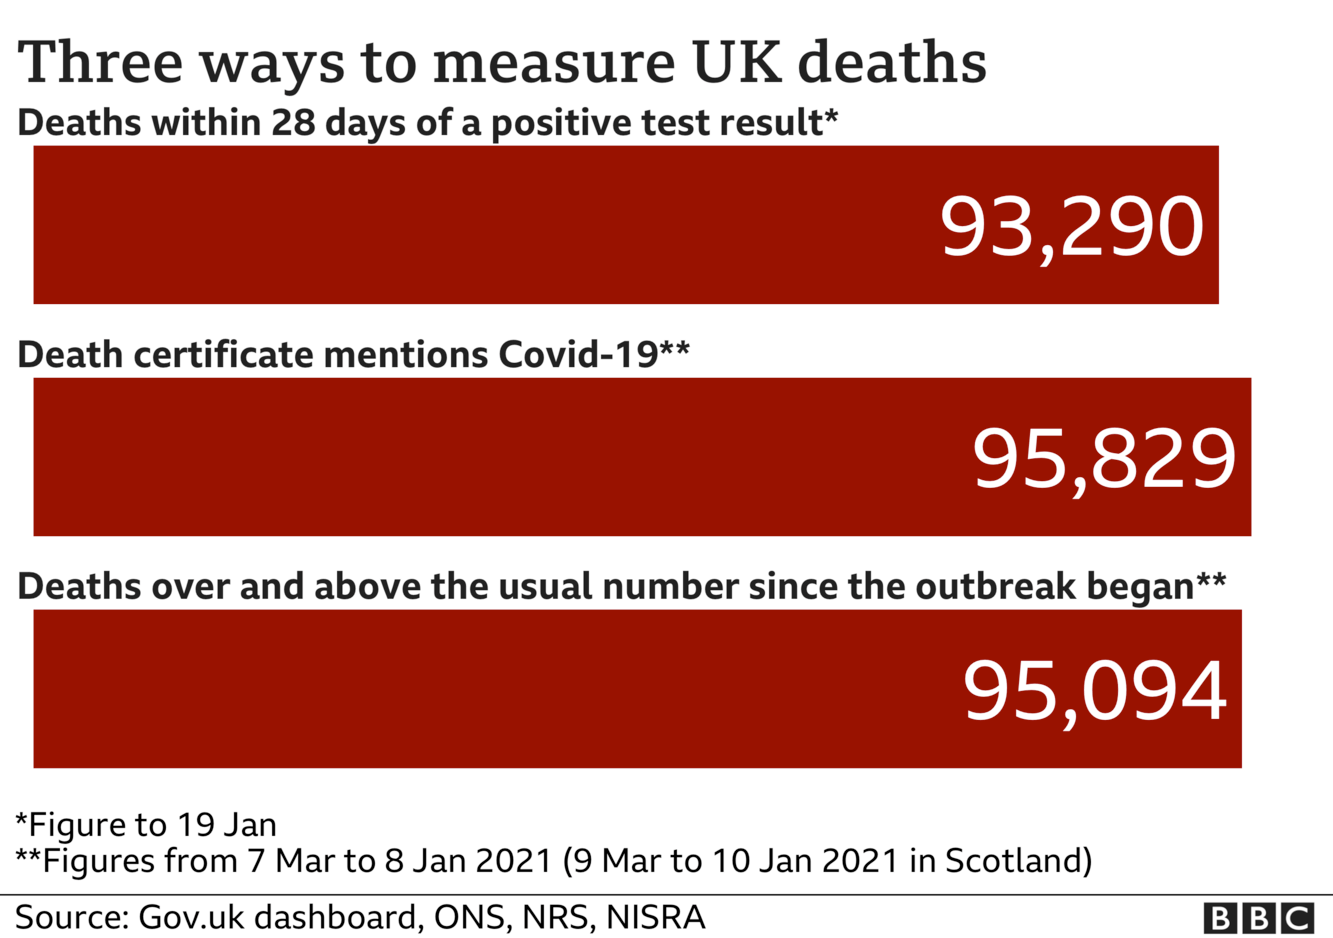 Chart showing three different totals for coronavirus deaths - the government measures all deaths within 28 days of a positive test, that total is 93,290. The ONS includes all deaths where coronavirus was mentioned on the death certificate, that total is 95,829 and the final total includes all deaths over and above the average for the time of year and that total is now 95,094. Updated 20 Jan.